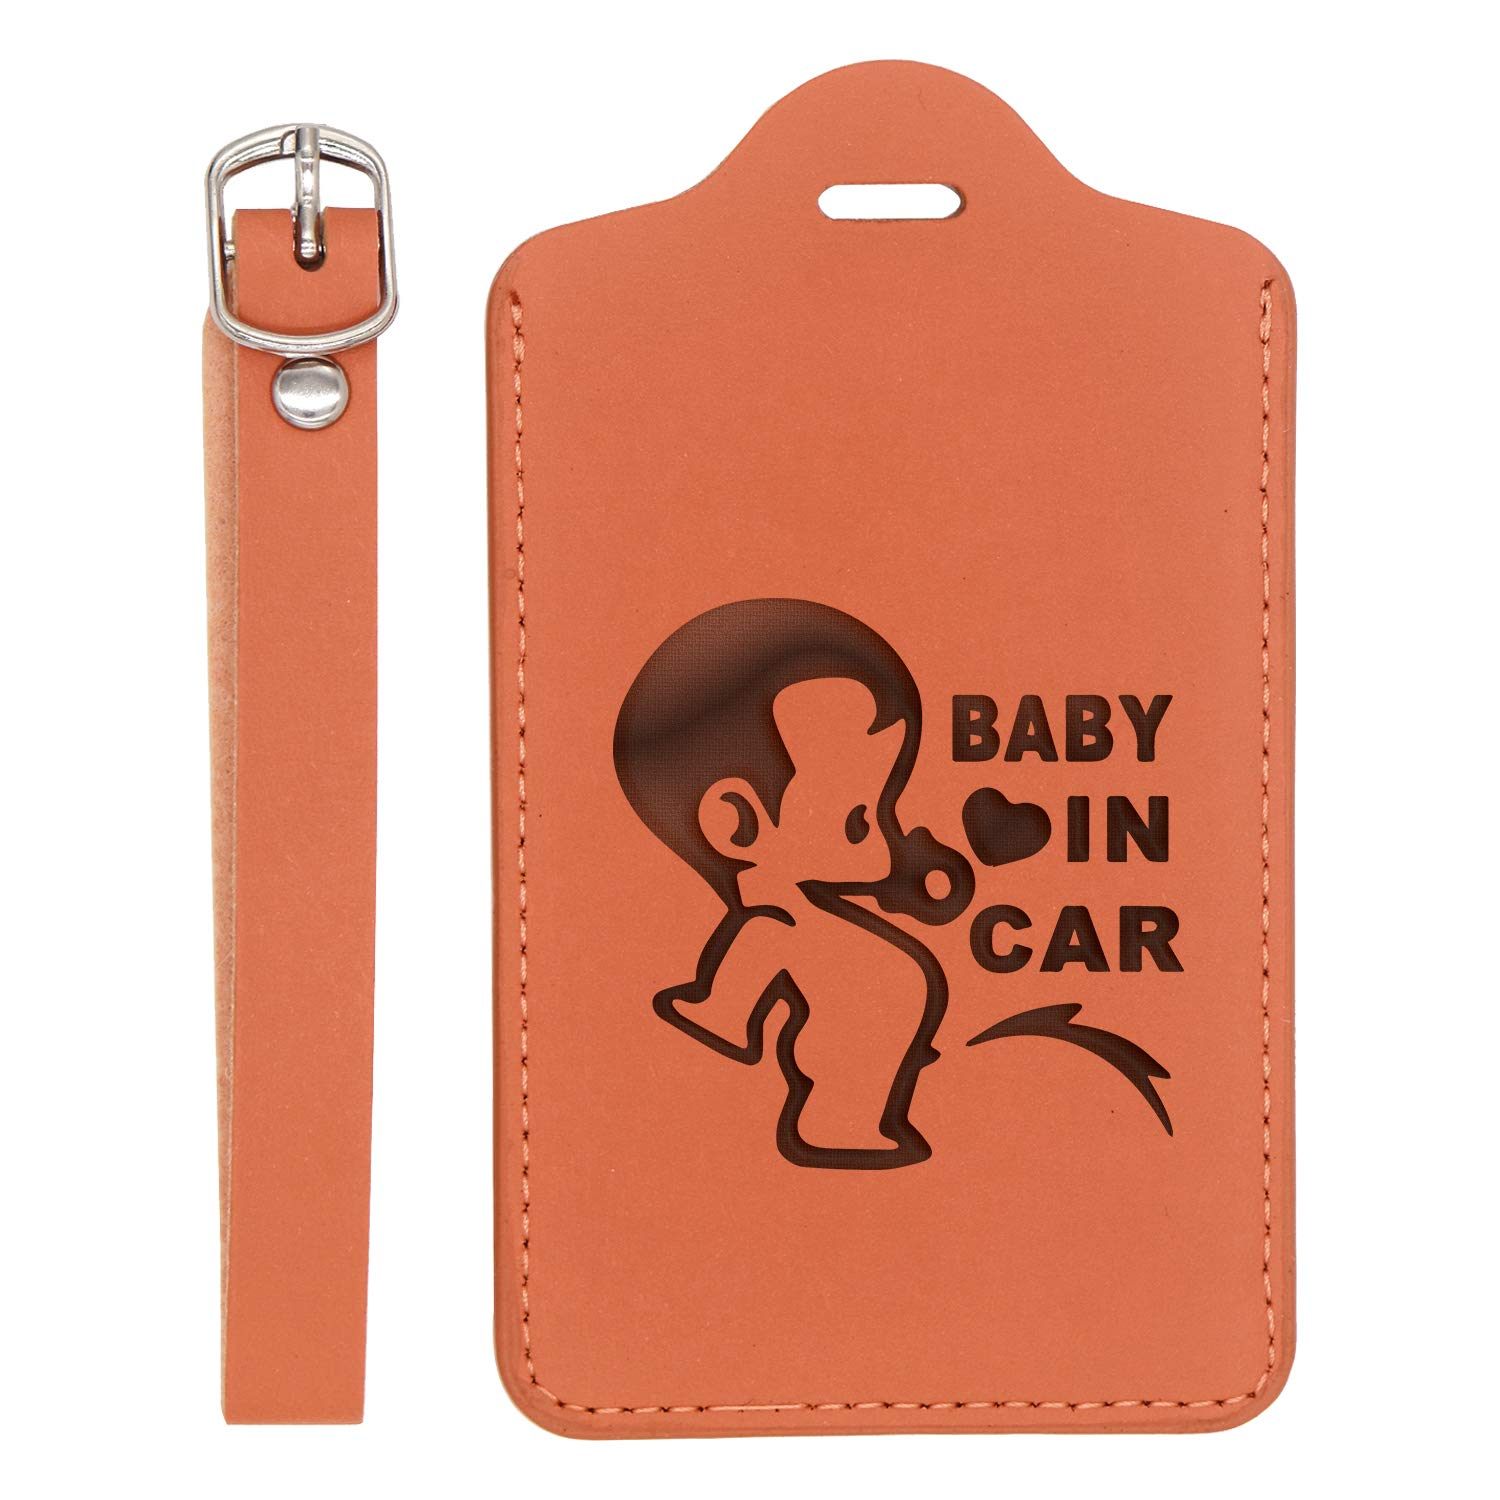 Baby In Car Engraved Synthetic Pu Leather Luggage Tag - United States Standard Handcrafted By Mastercraftsmen London Tan - Set Of 2 For Any Type Of Luggage